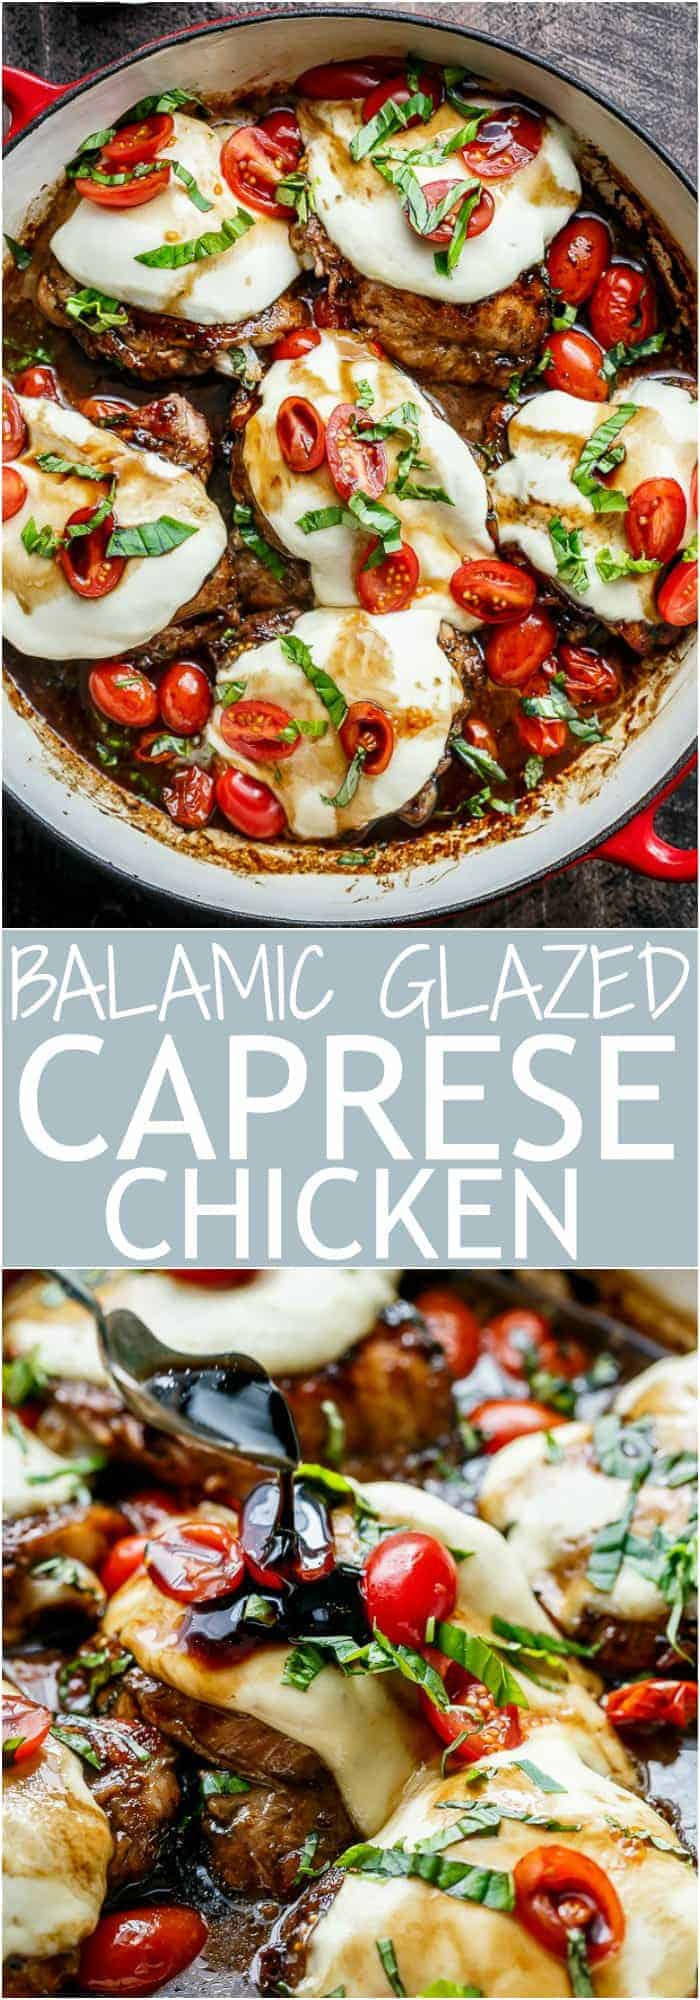 Caprese Chicken cooked right in a sweet, garlic balsamic glaze with juicy cherry tomatoes, fresh basil and topped with melted mozzarella cheese! | cafedelites.com